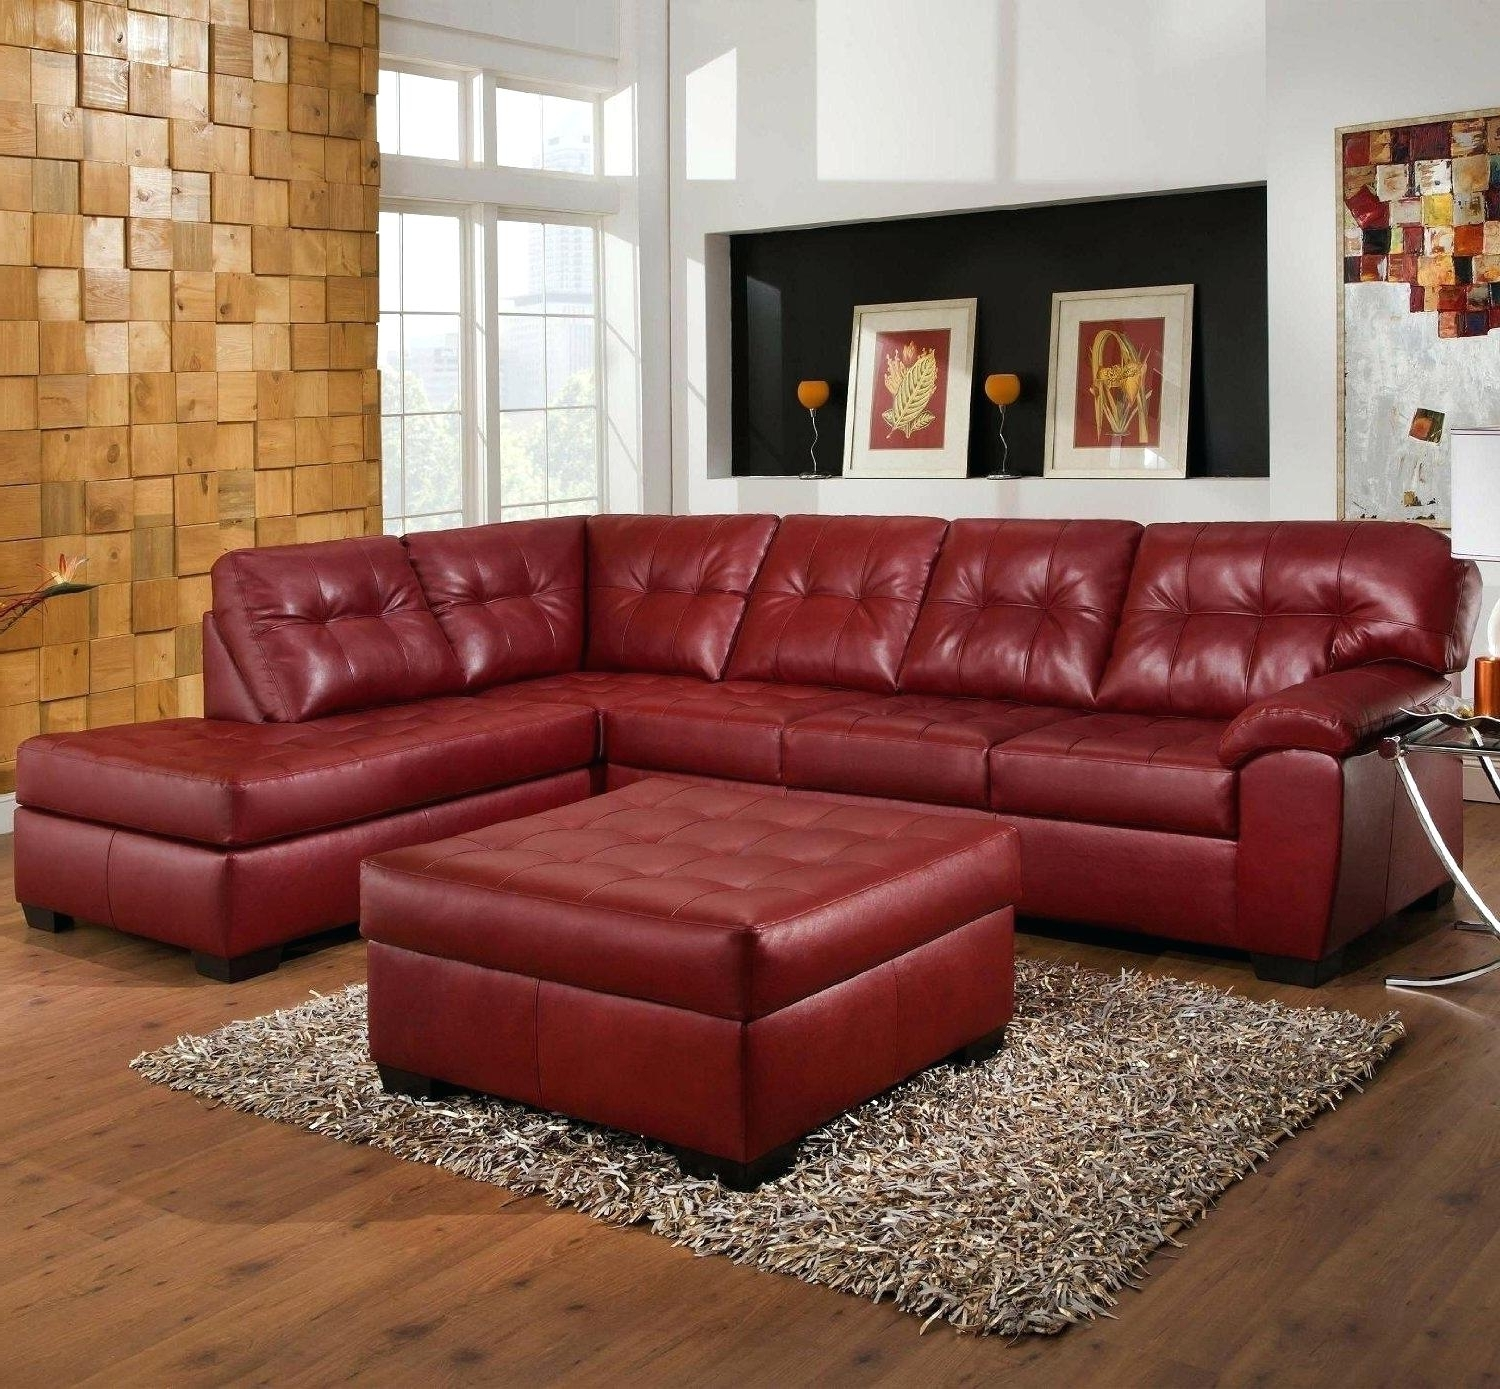 Red Leather Sofa Sectional Sale Recliner Sofas And Loveseats In Well Known Red Leather Sectional Sofas With Recliners (View 18 of 20)